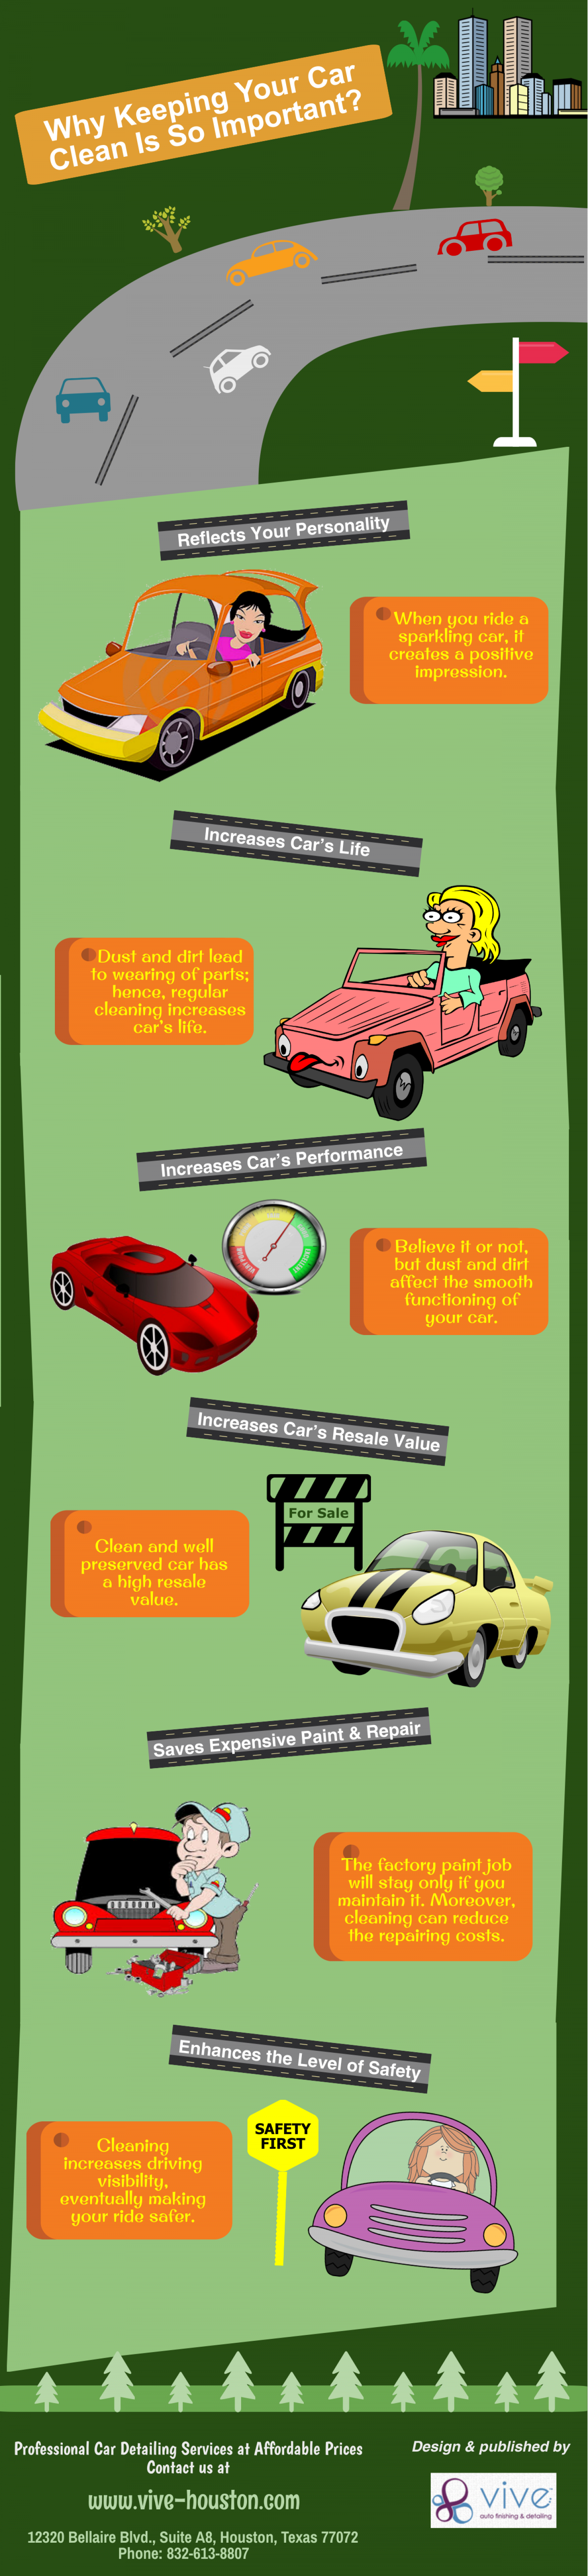 Why Keeping Your Car Clean is so important? Infographic